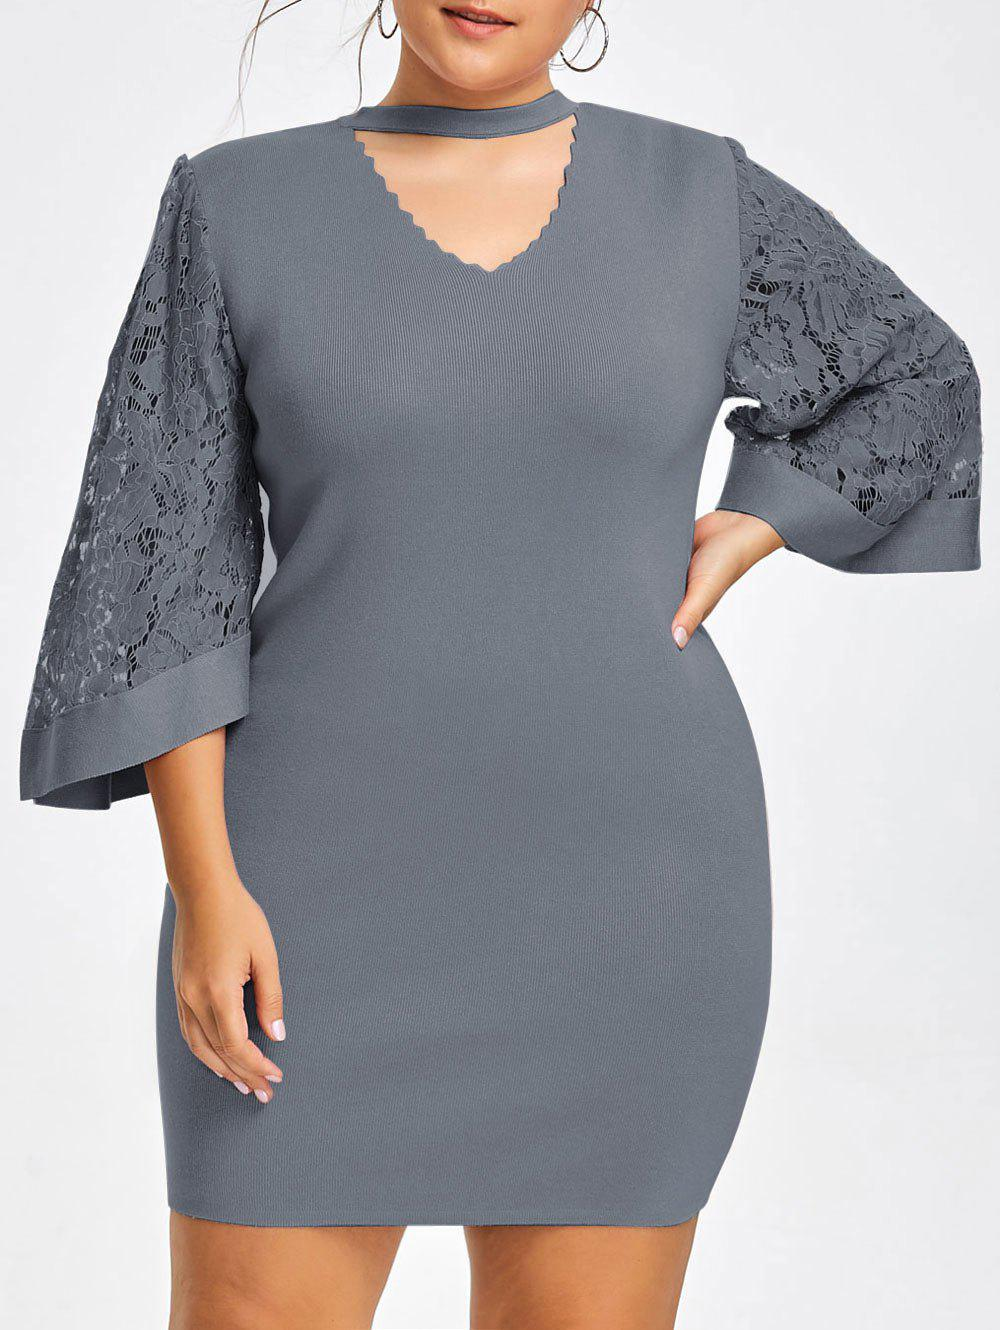 Plus Size Lace Sleeve Knitted Cutout Choker Dress - GRAY 5XL